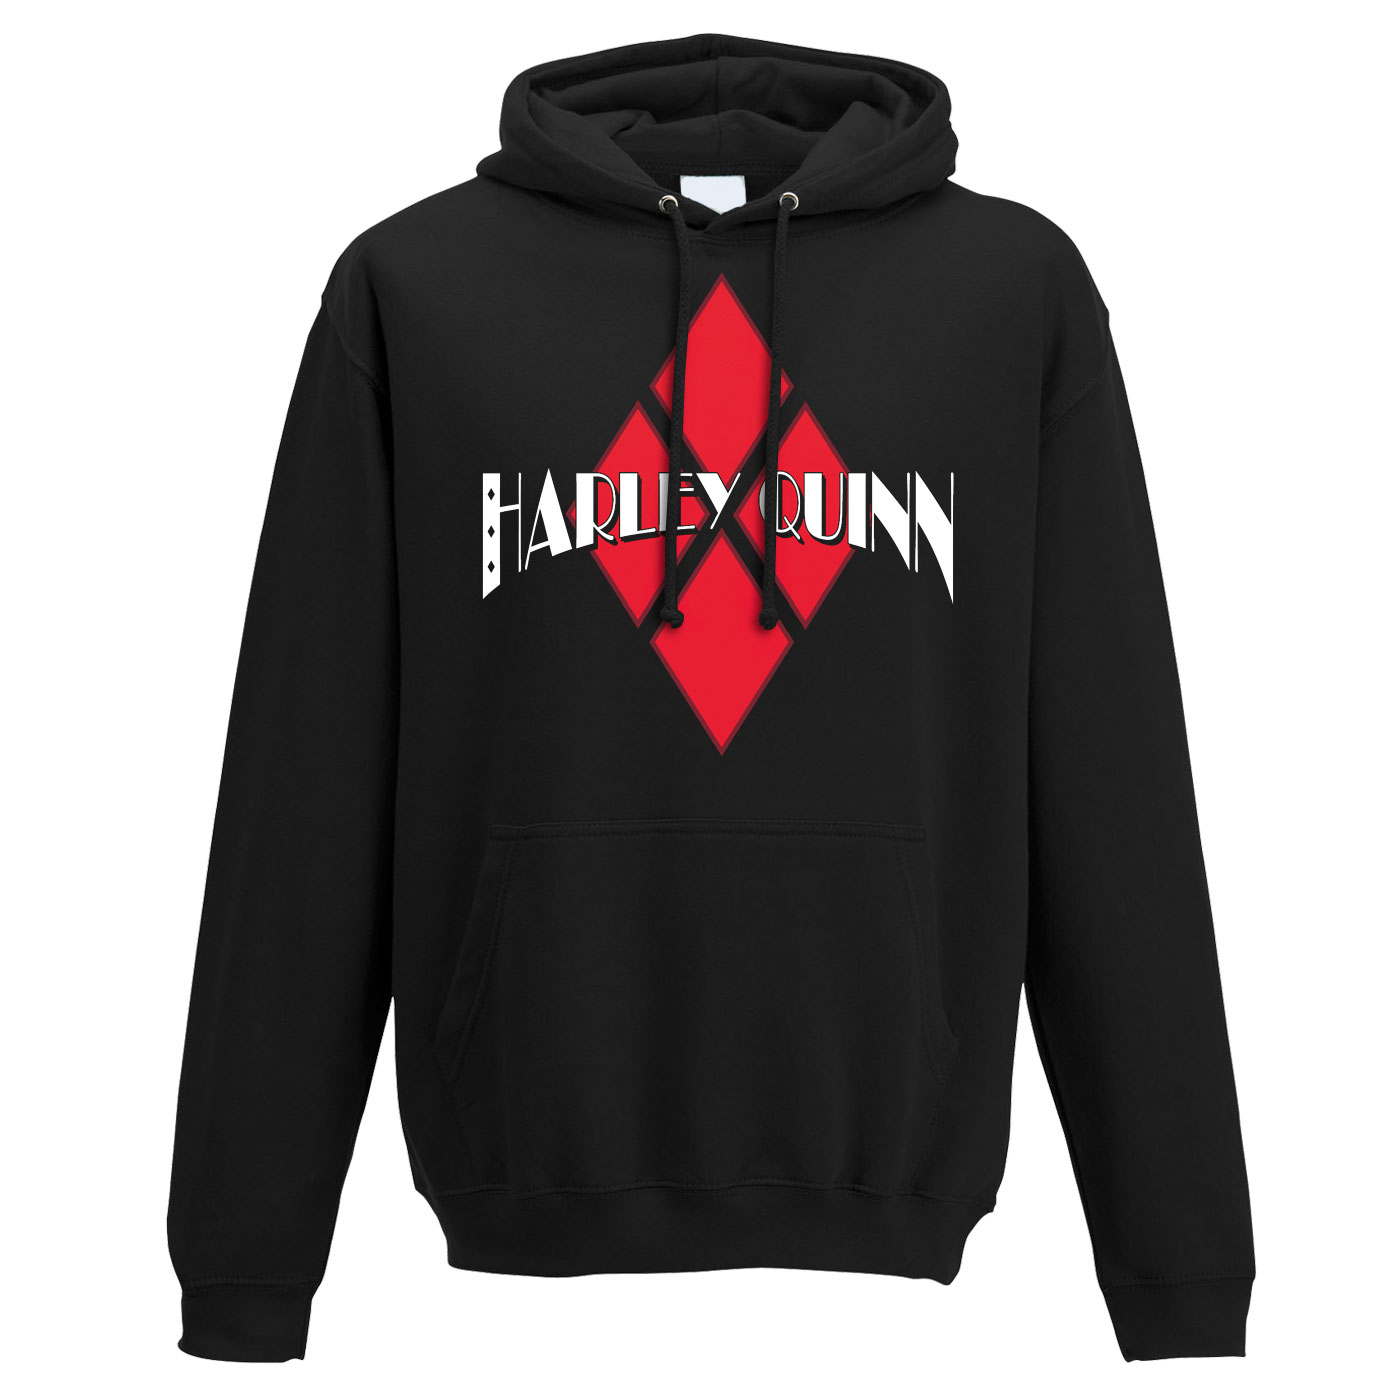 Hail The Villains Harley Quinn Hoodie